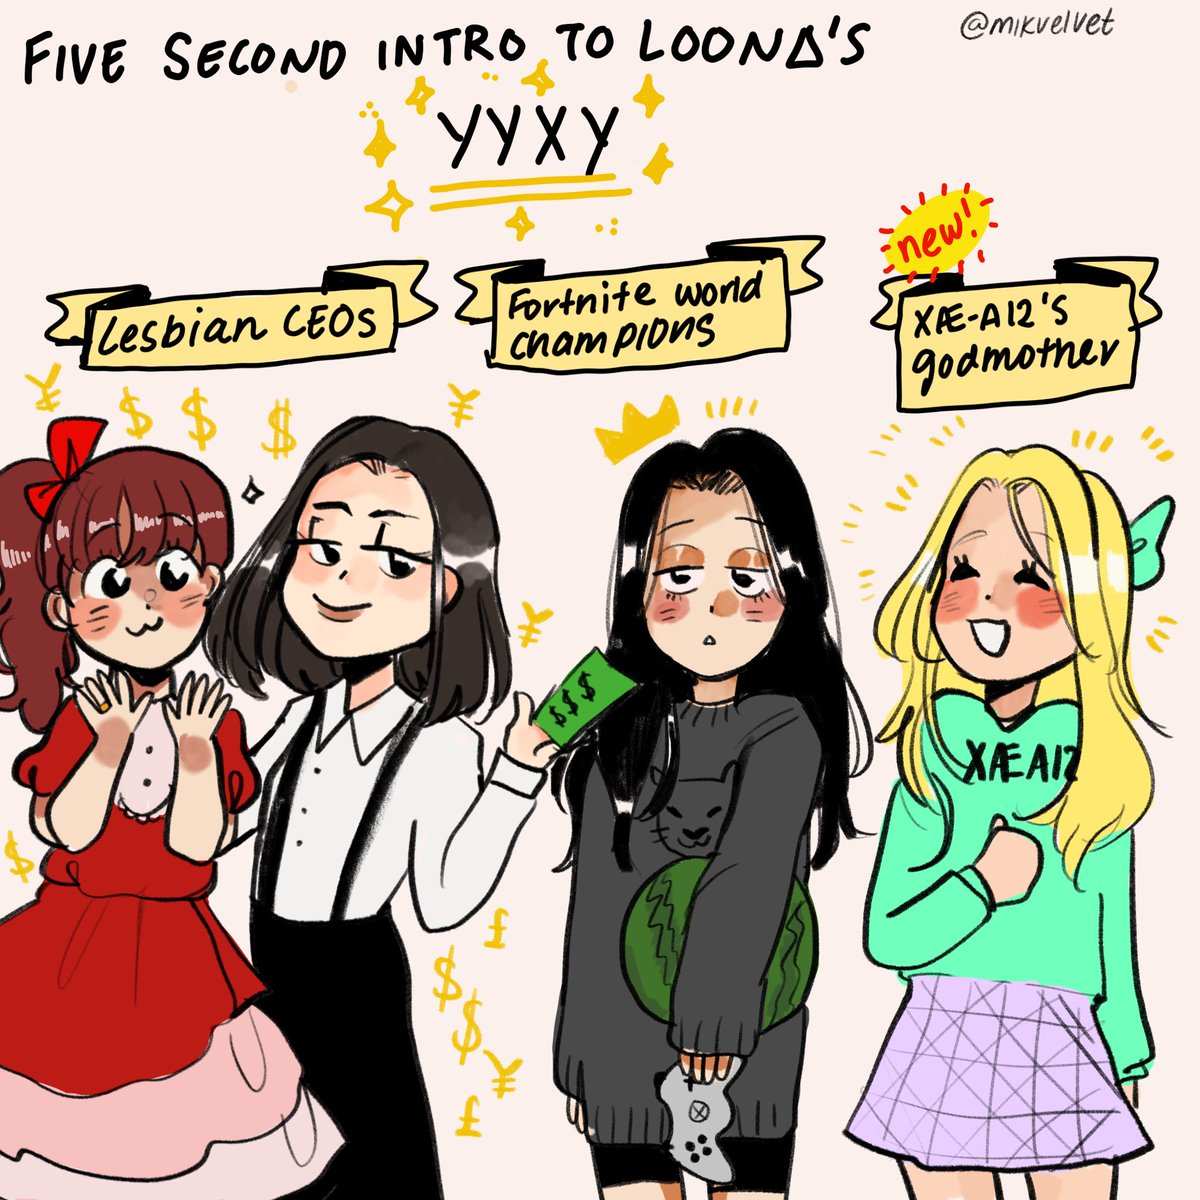 I don't quite know what I was expecting when I started stanning loona in 2018 but i sure never could've predicted this !! #loonafanart #yyxy #gowon <br>http://pic.twitter.com/ghT5qCljdF